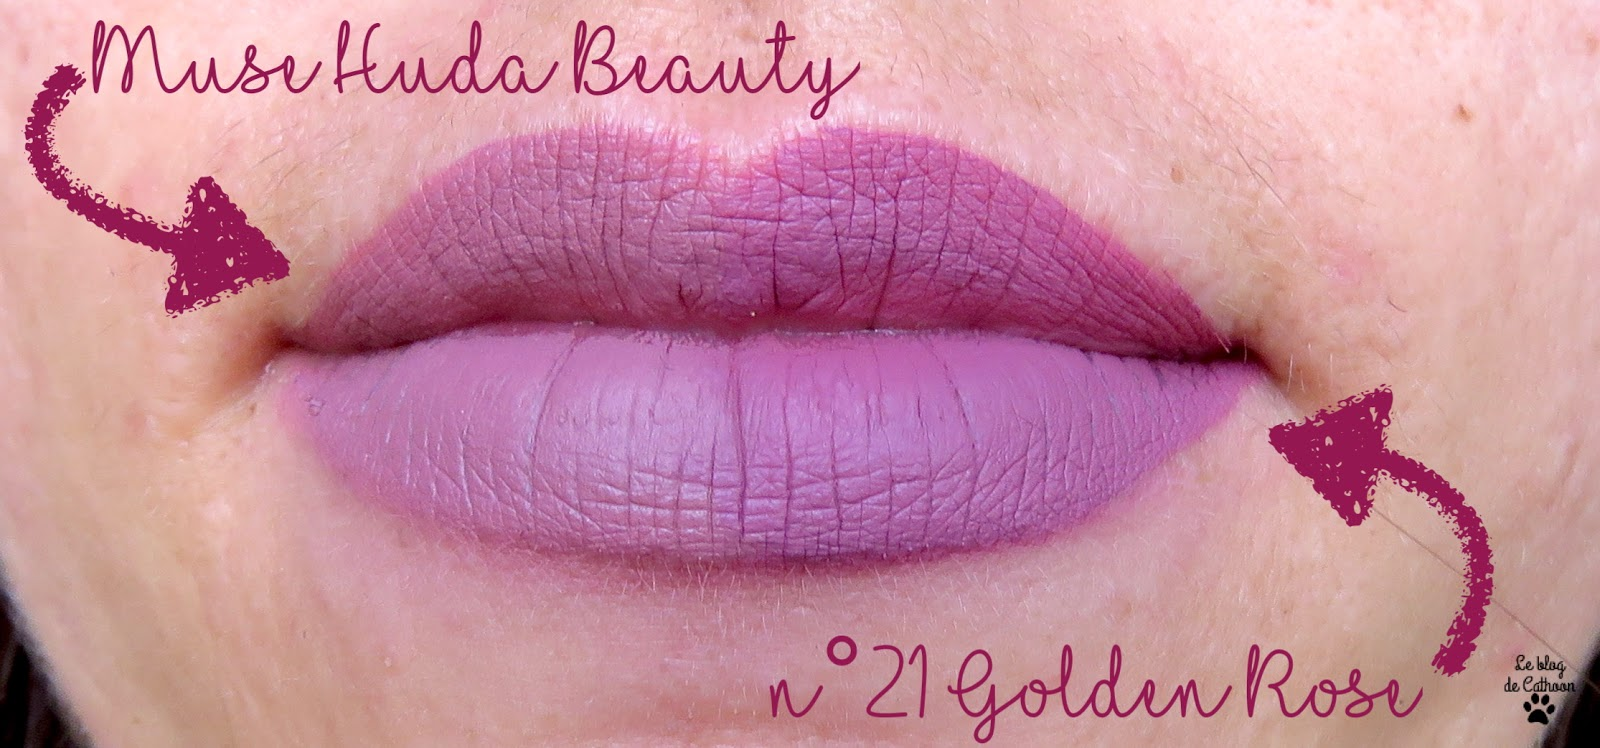 Muse d'Hude Beauty et n°21 de Golden Rose